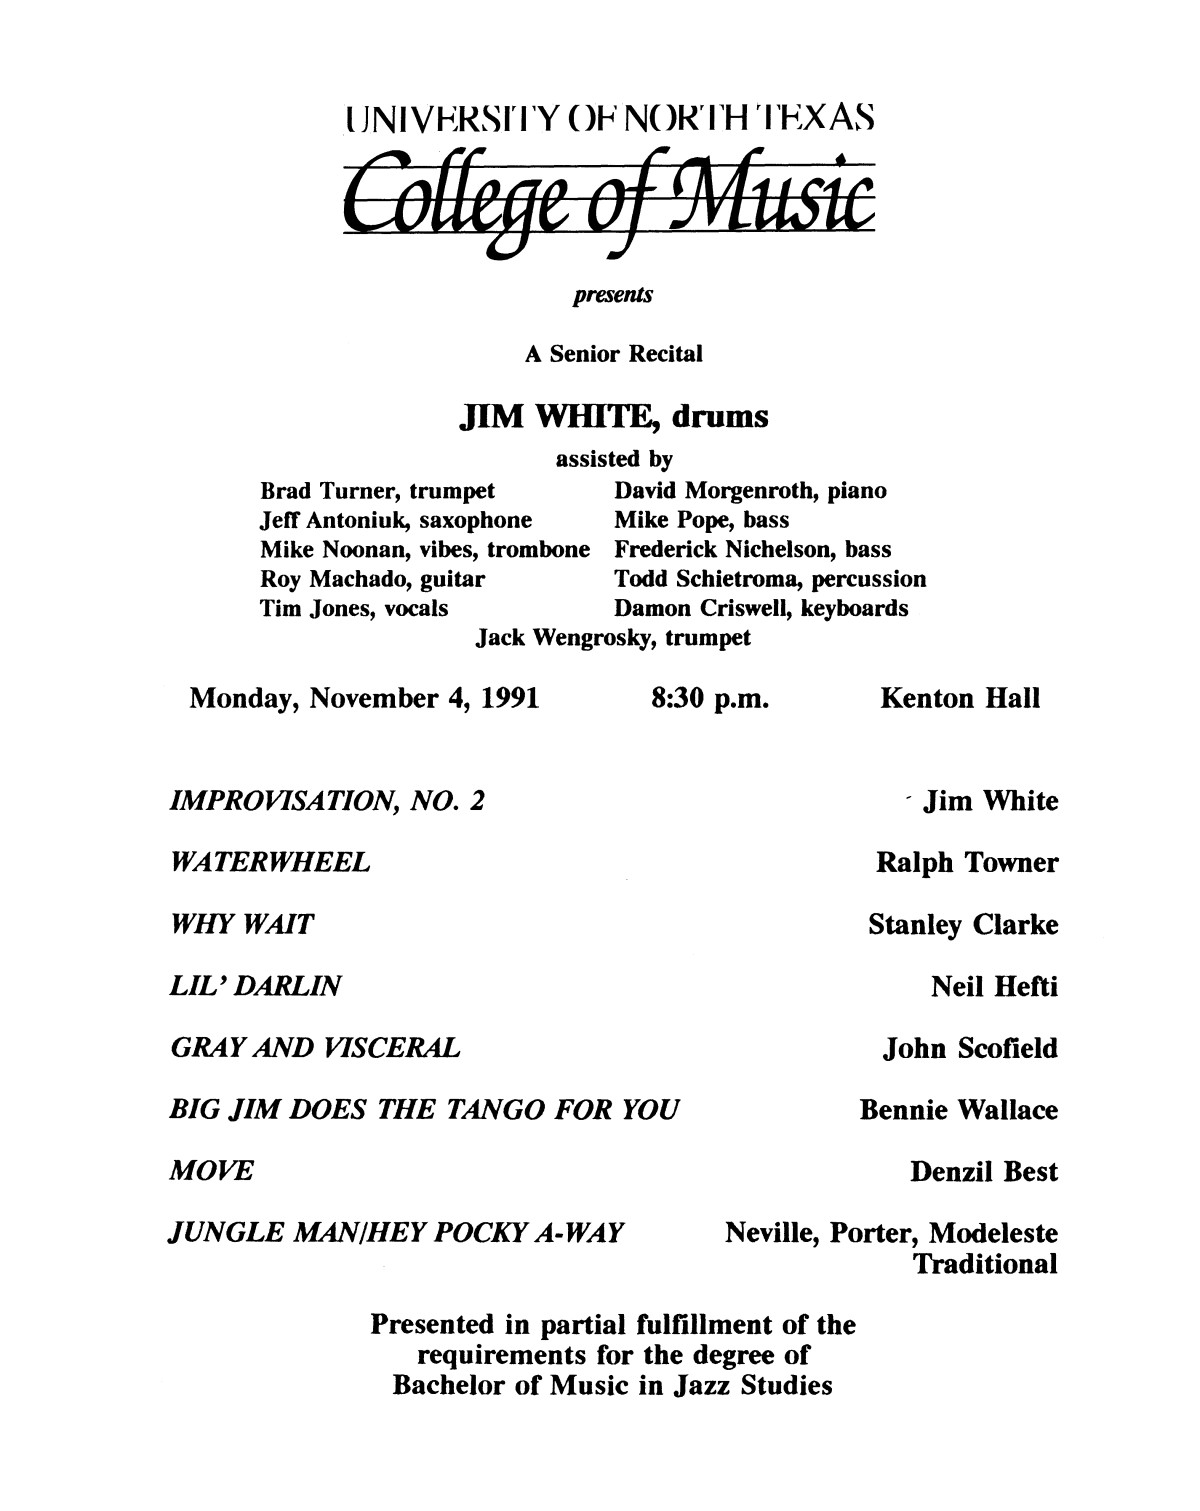 College of Music program book 1991-1992 Student Performances Vol. 2                                                                                                      [Sequence #]: 35 of 310